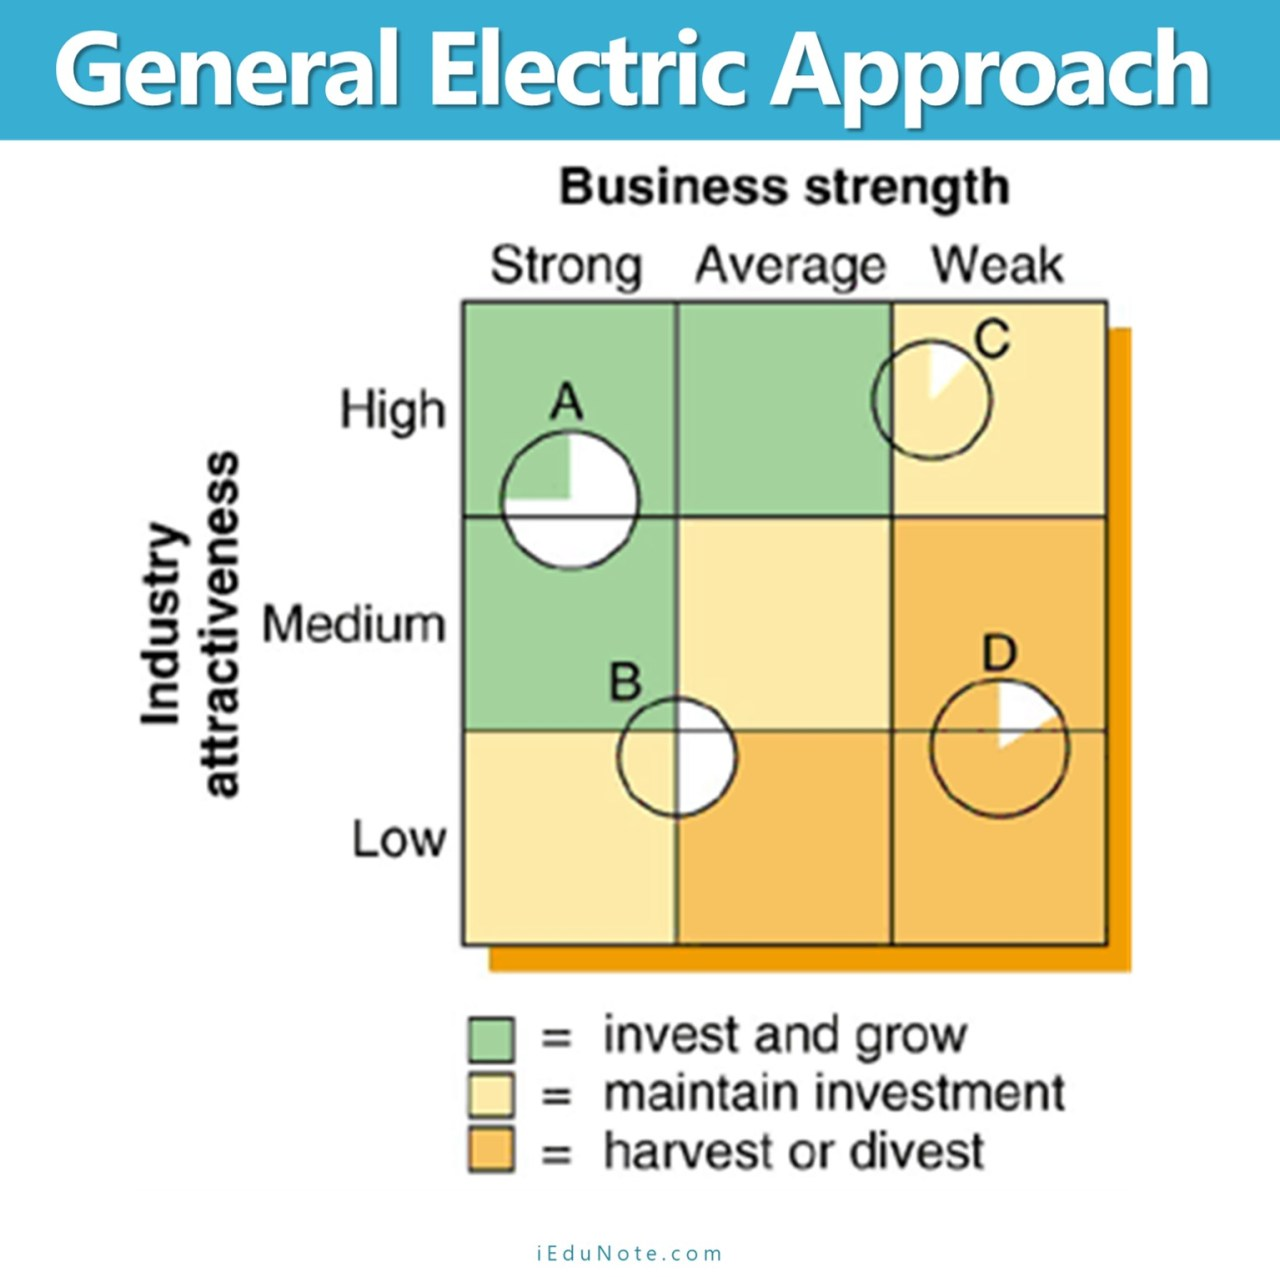 General Electric Approach